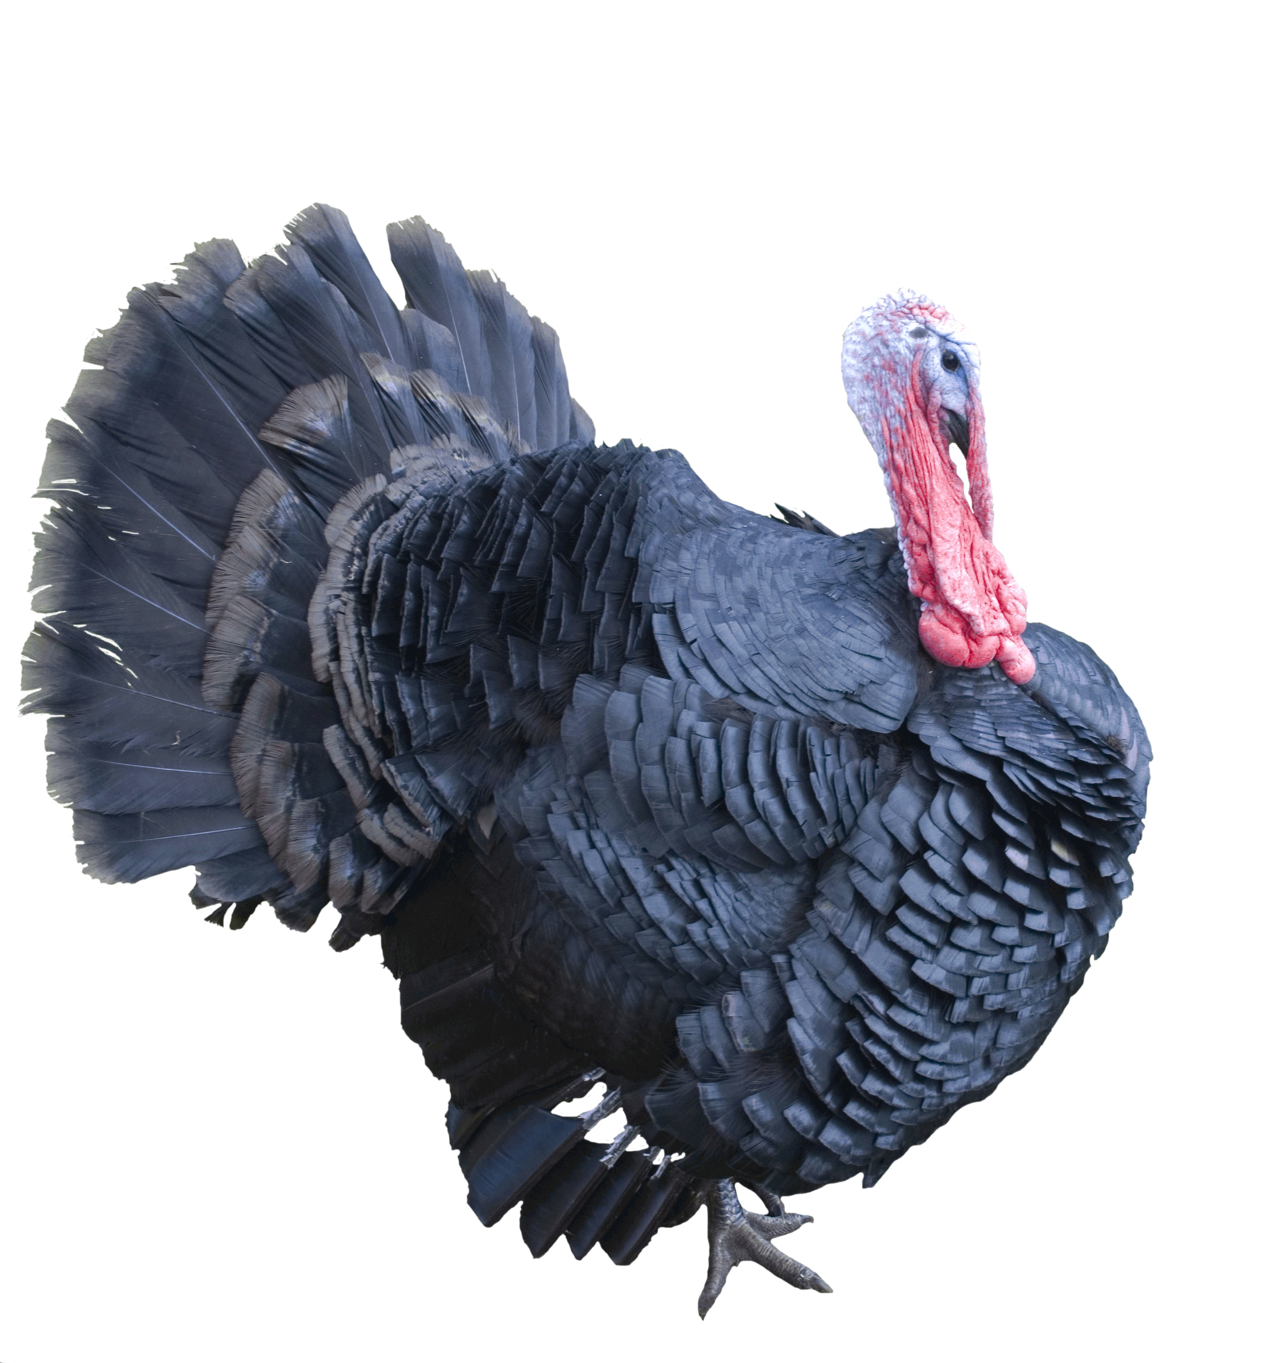 svg free download transparent turkey real #106880026